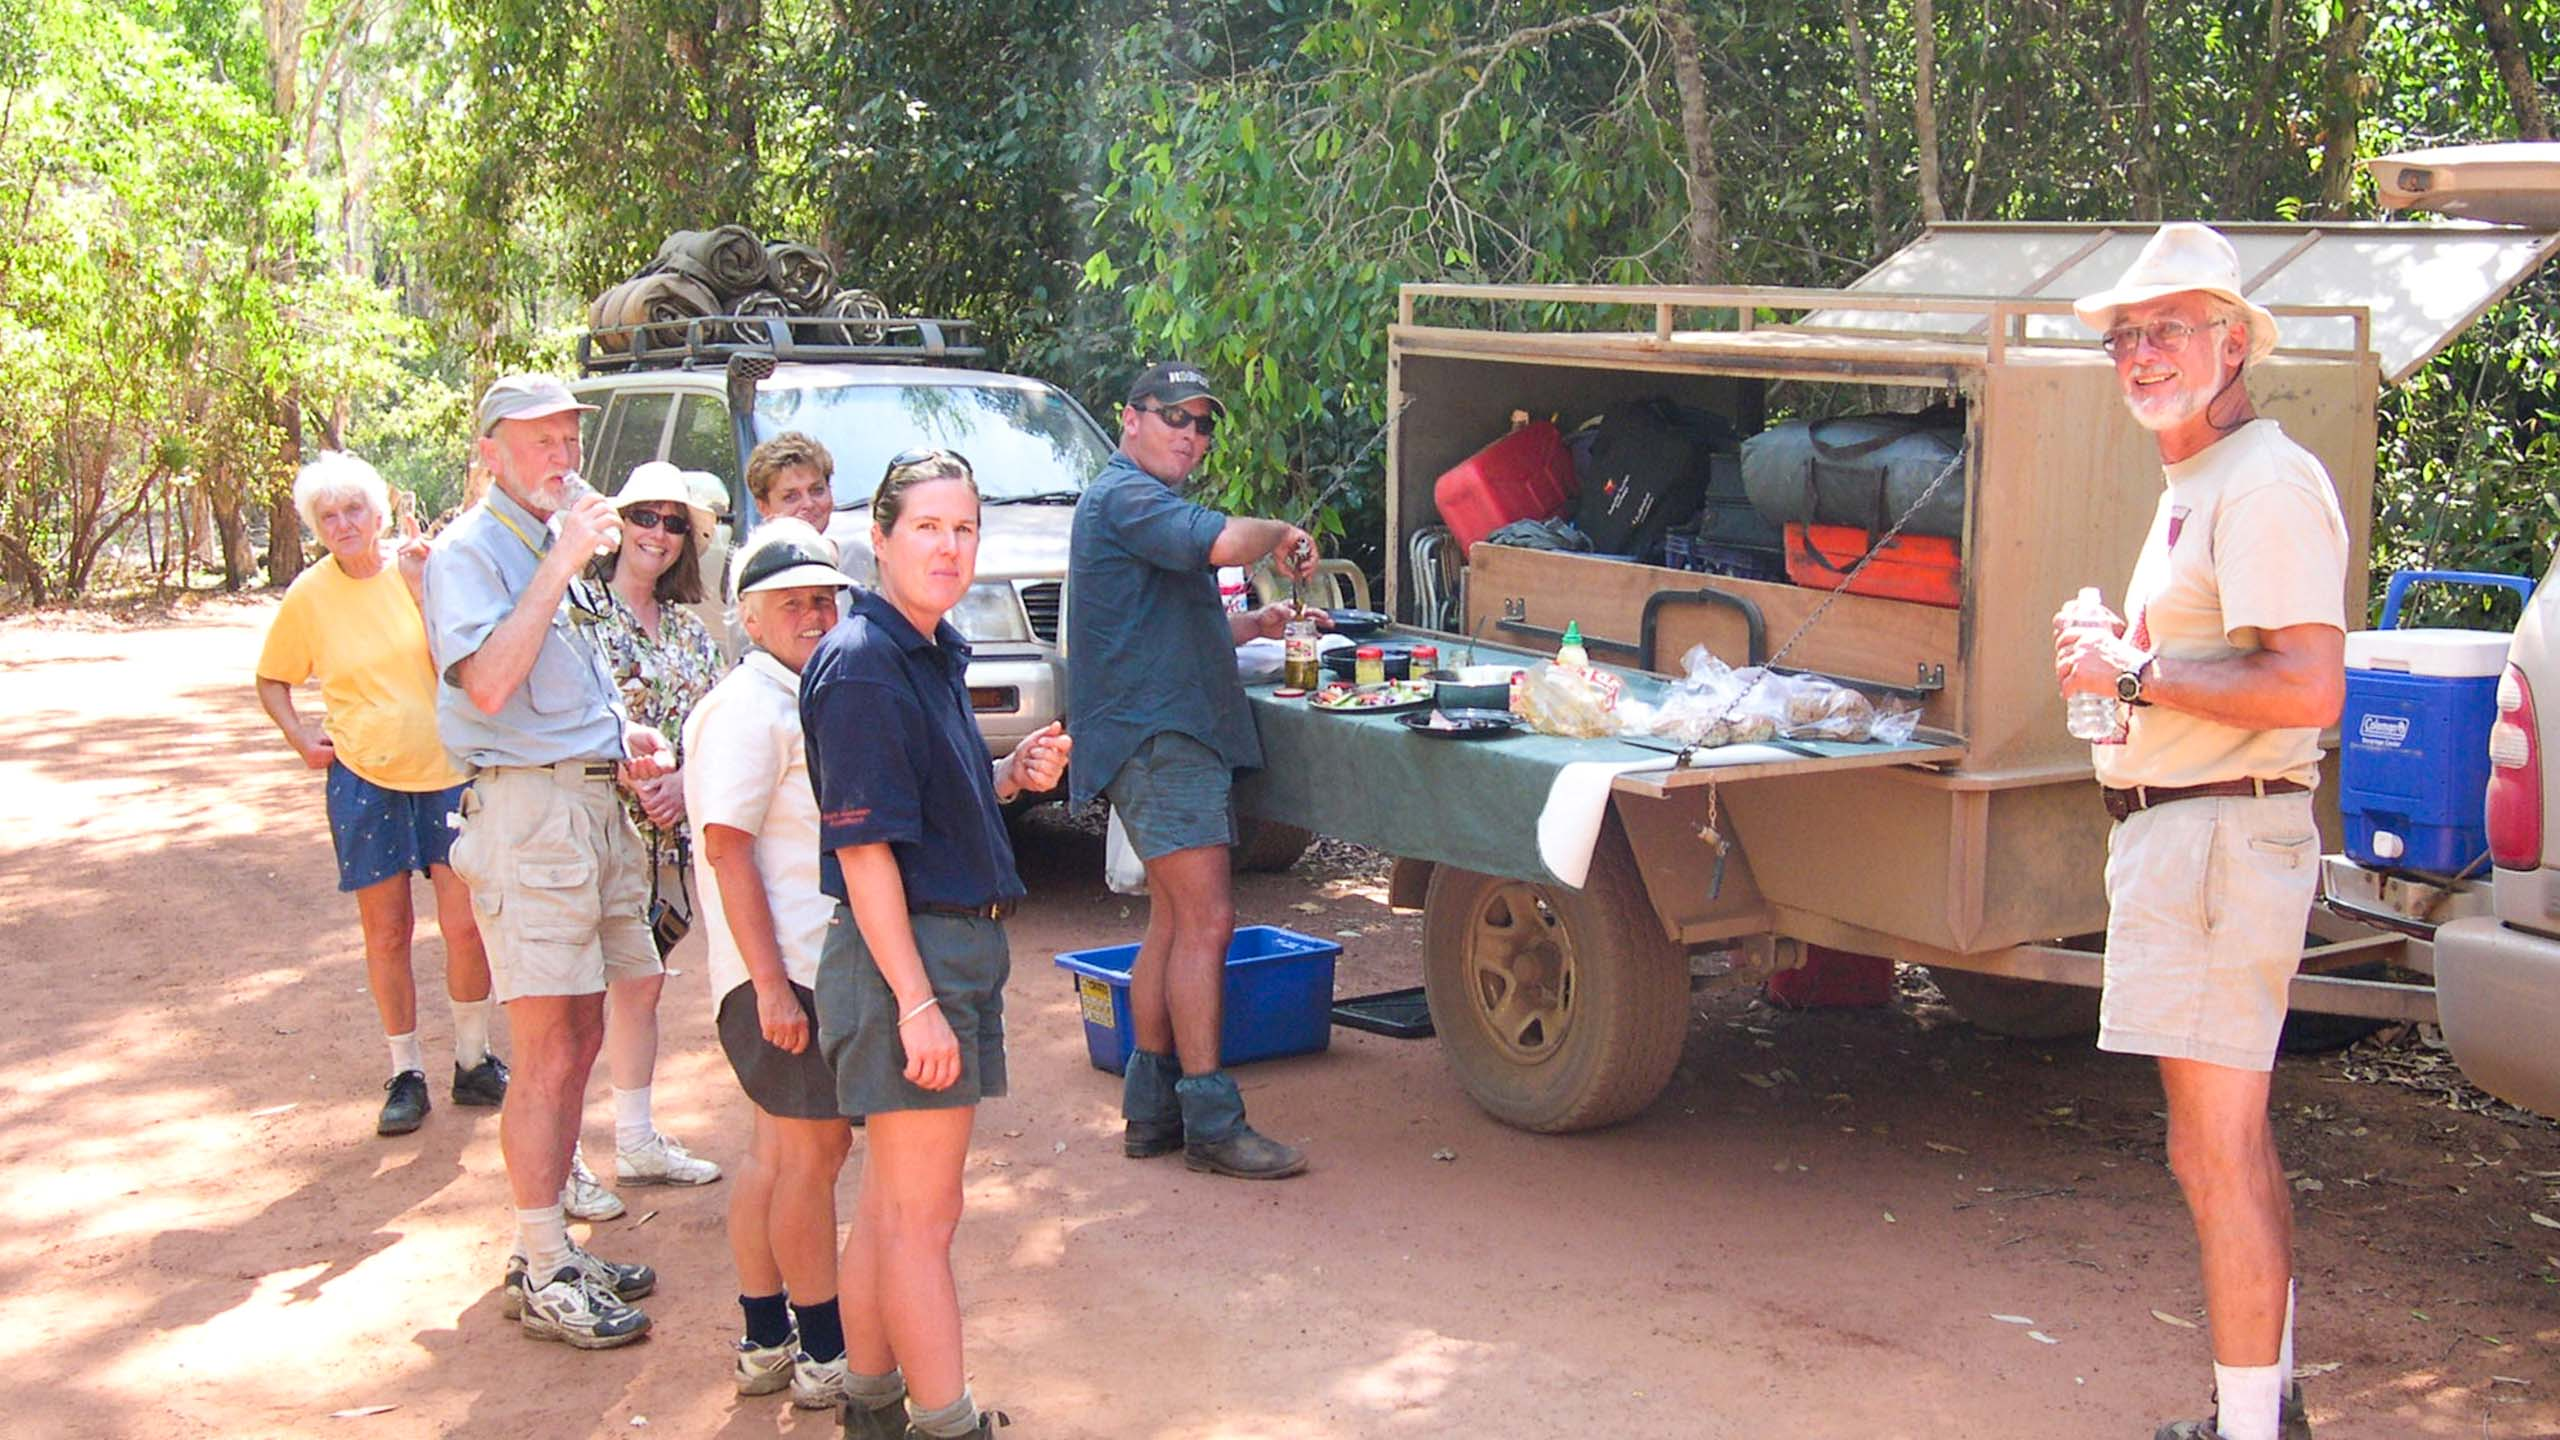 Group of travelers barbecue in Australia